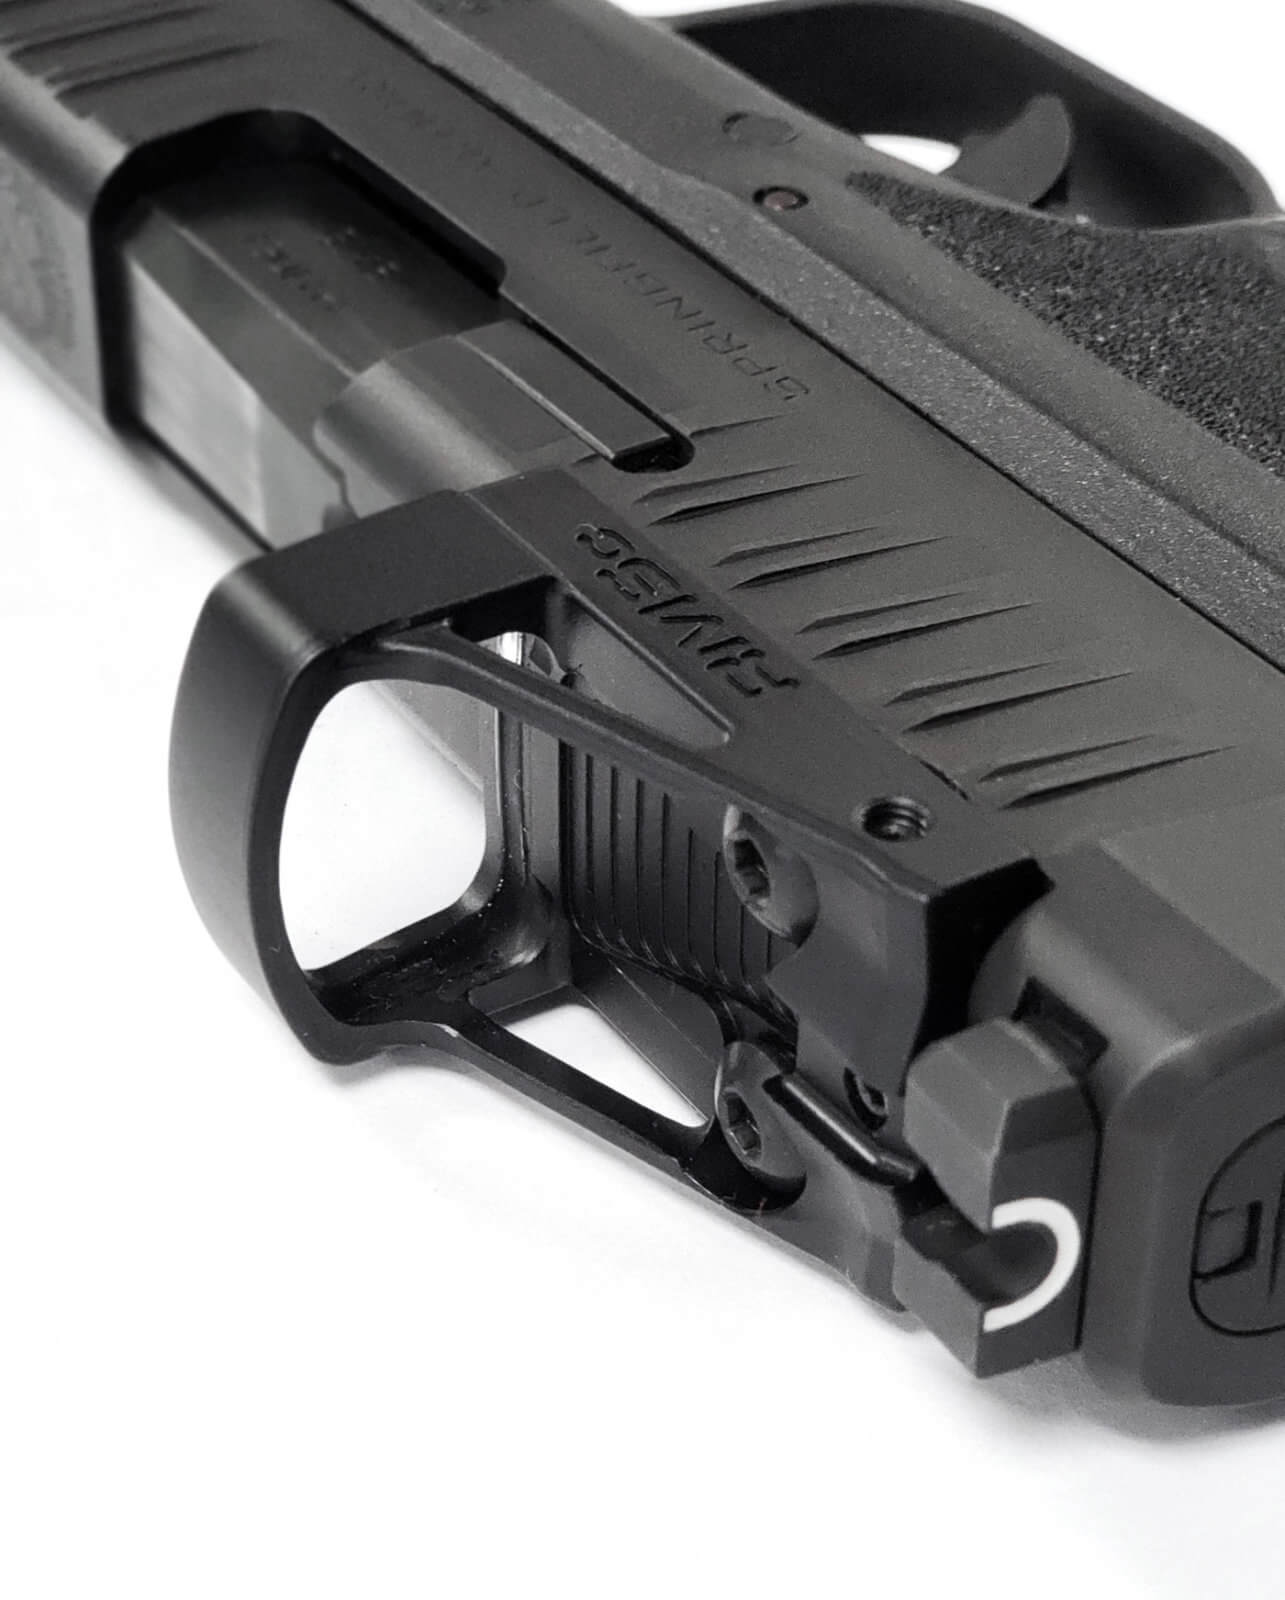 Angle view of the Shield red dot sight on a Springfield Armory pistol